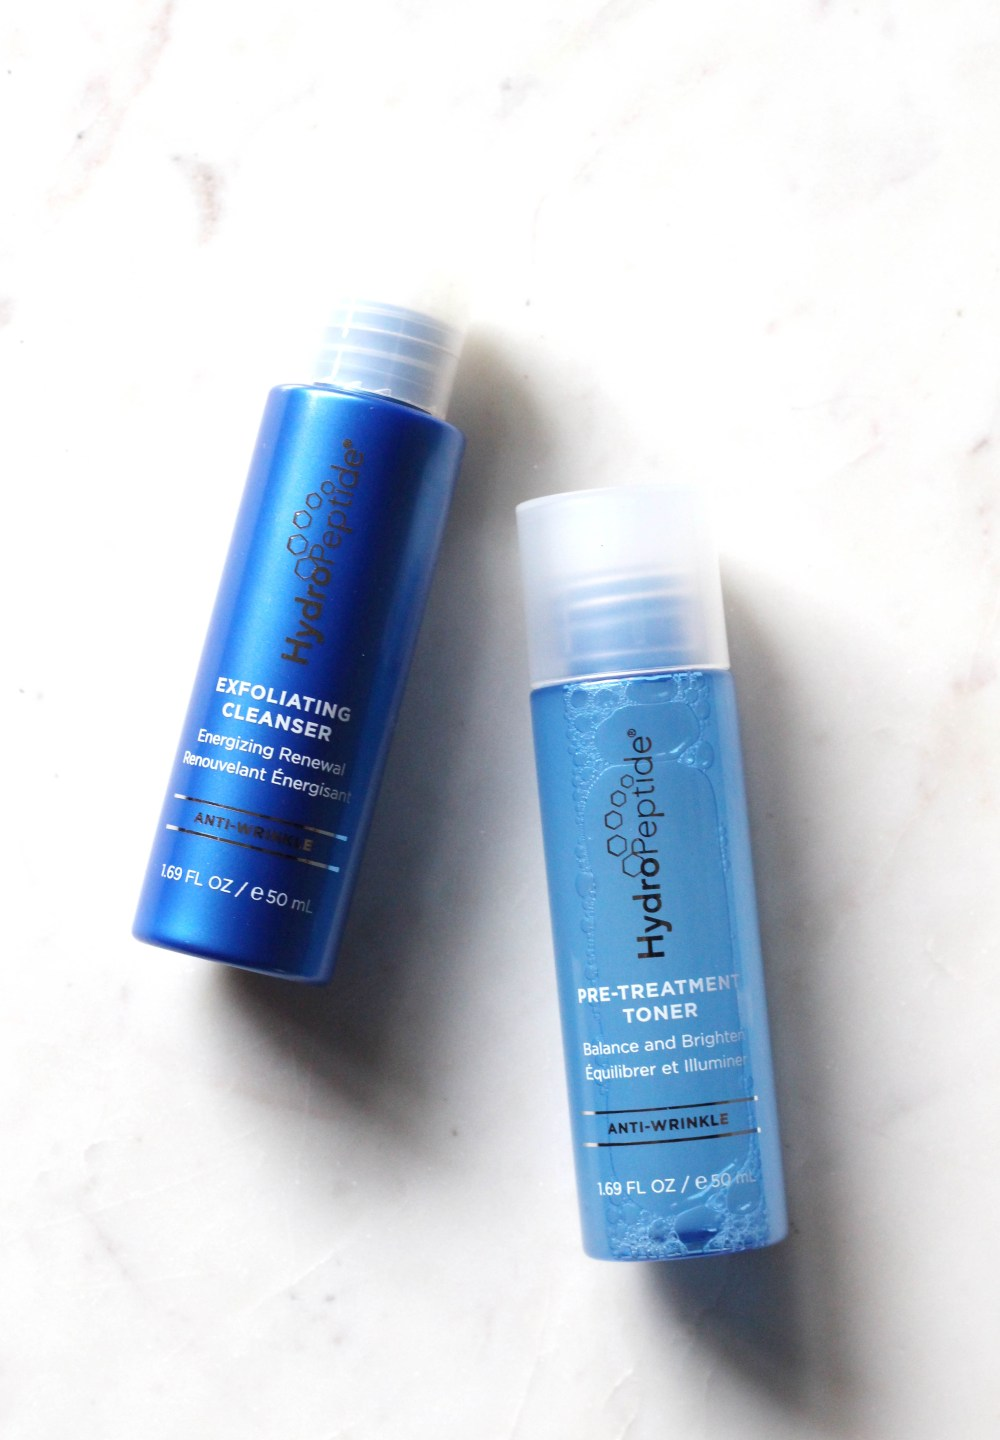 Exfoliating Cleanser and Pre-Treatment Toner